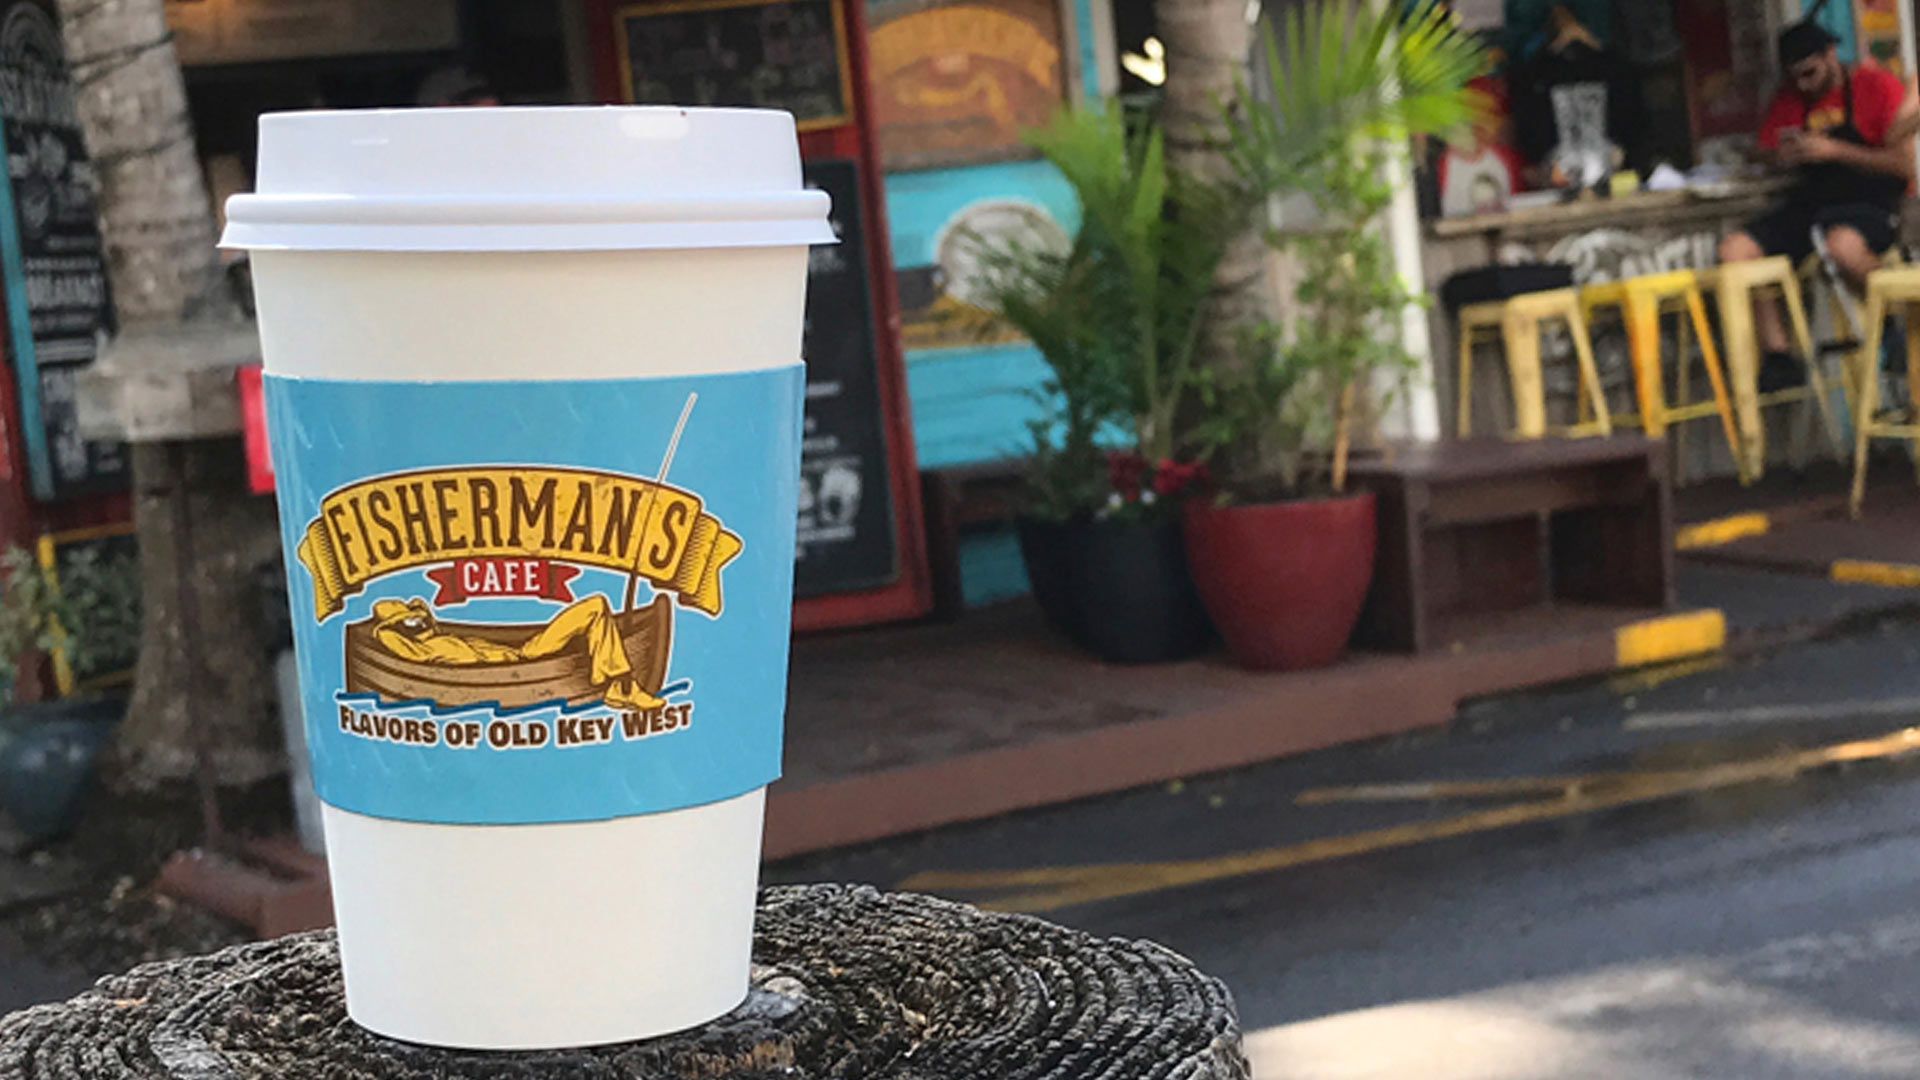 cafe con leche at Fisherman's Cafe in key west